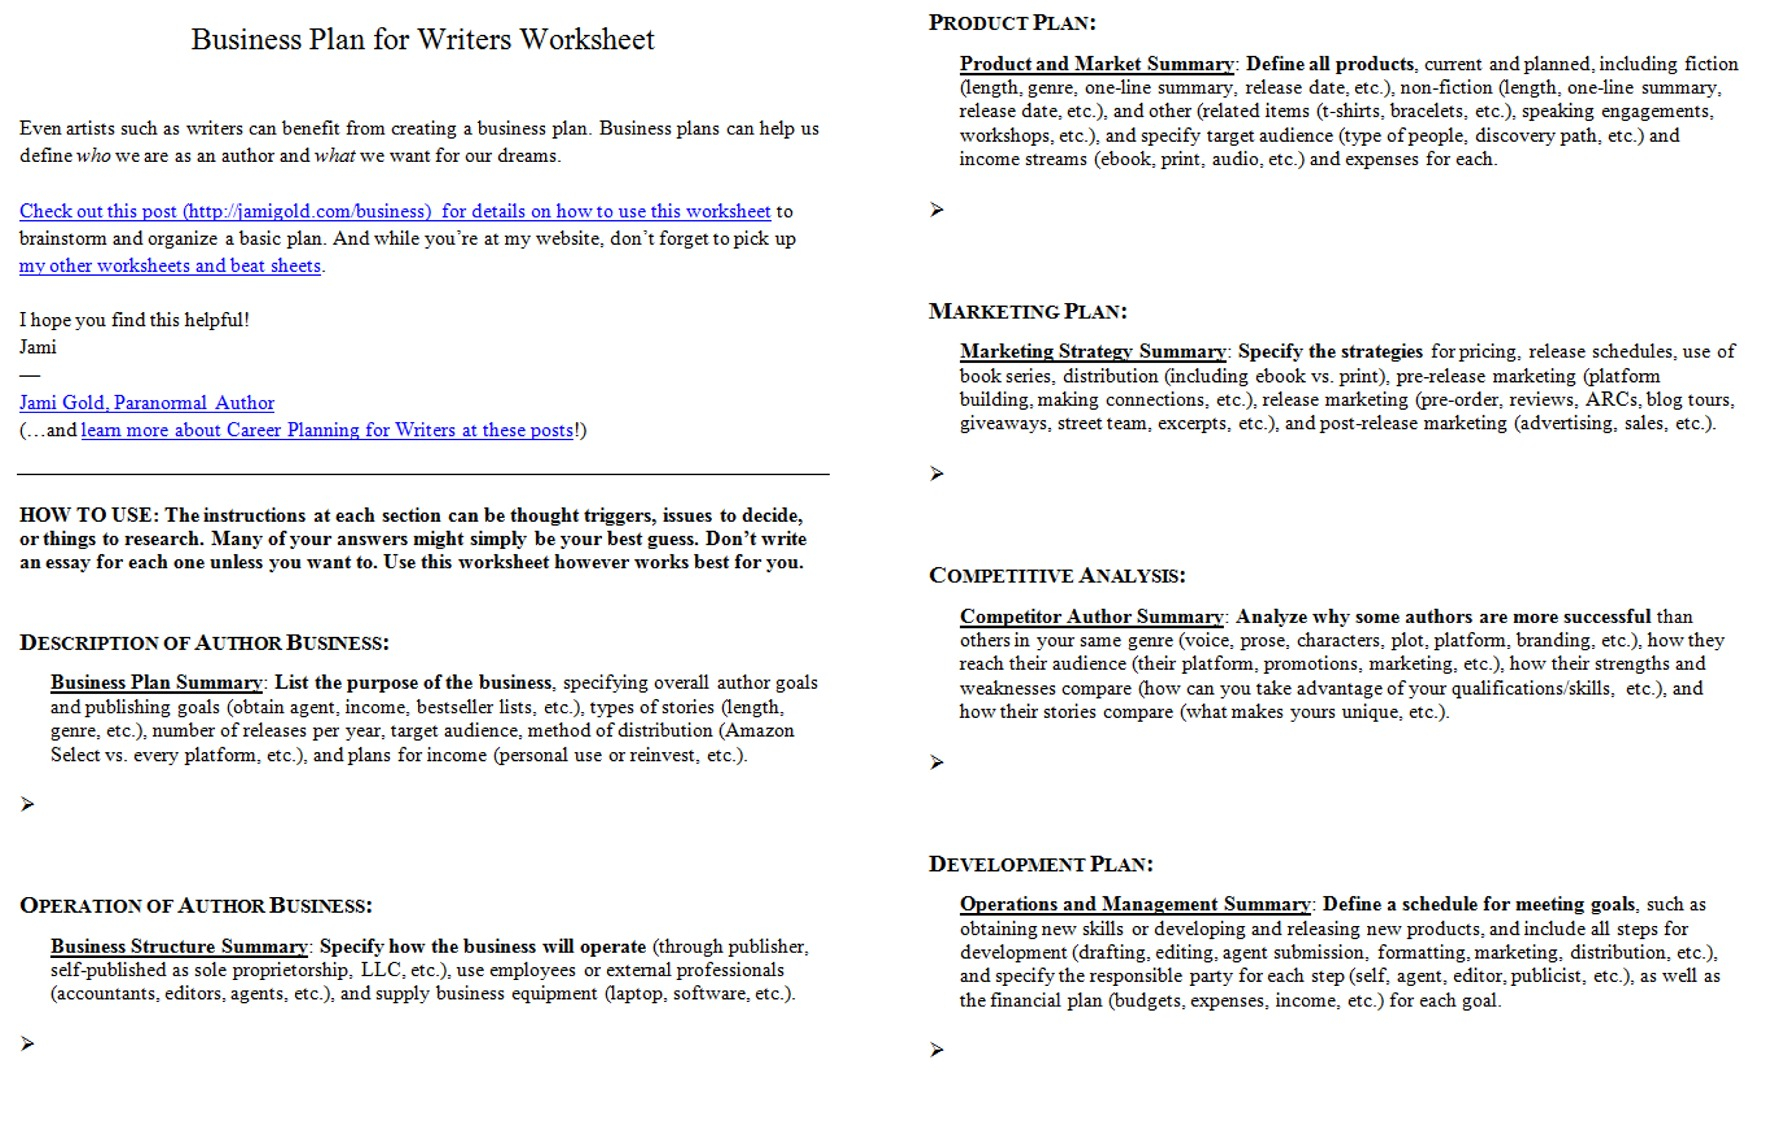 Aldiablosus  Marvellous Worksheets For Writers  Jami Gold Paranormal Author With Lovely Screen Shot Of Both Pages Of The Business Plan For Writers Worksheet With Breathtaking Th Grade Graphing Worksheets Also Perimeter Of Irregular Shapes Worksheet In Addition Greatest Common Factor And Least Common Multiple Worksheets And Making  Worksheet As Well As Simplifying Fractions Worksheet Th Grade Additionally Ear Worksheet From Jamigoldcom With Aldiablosus  Lovely Worksheets For Writers  Jami Gold Paranormal Author With Breathtaking Screen Shot Of Both Pages Of The Business Plan For Writers Worksheet And Marvellous Th Grade Graphing Worksheets Also Perimeter Of Irregular Shapes Worksheet In Addition Greatest Common Factor And Least Common Multiple Worksheets From Jamigoldcom